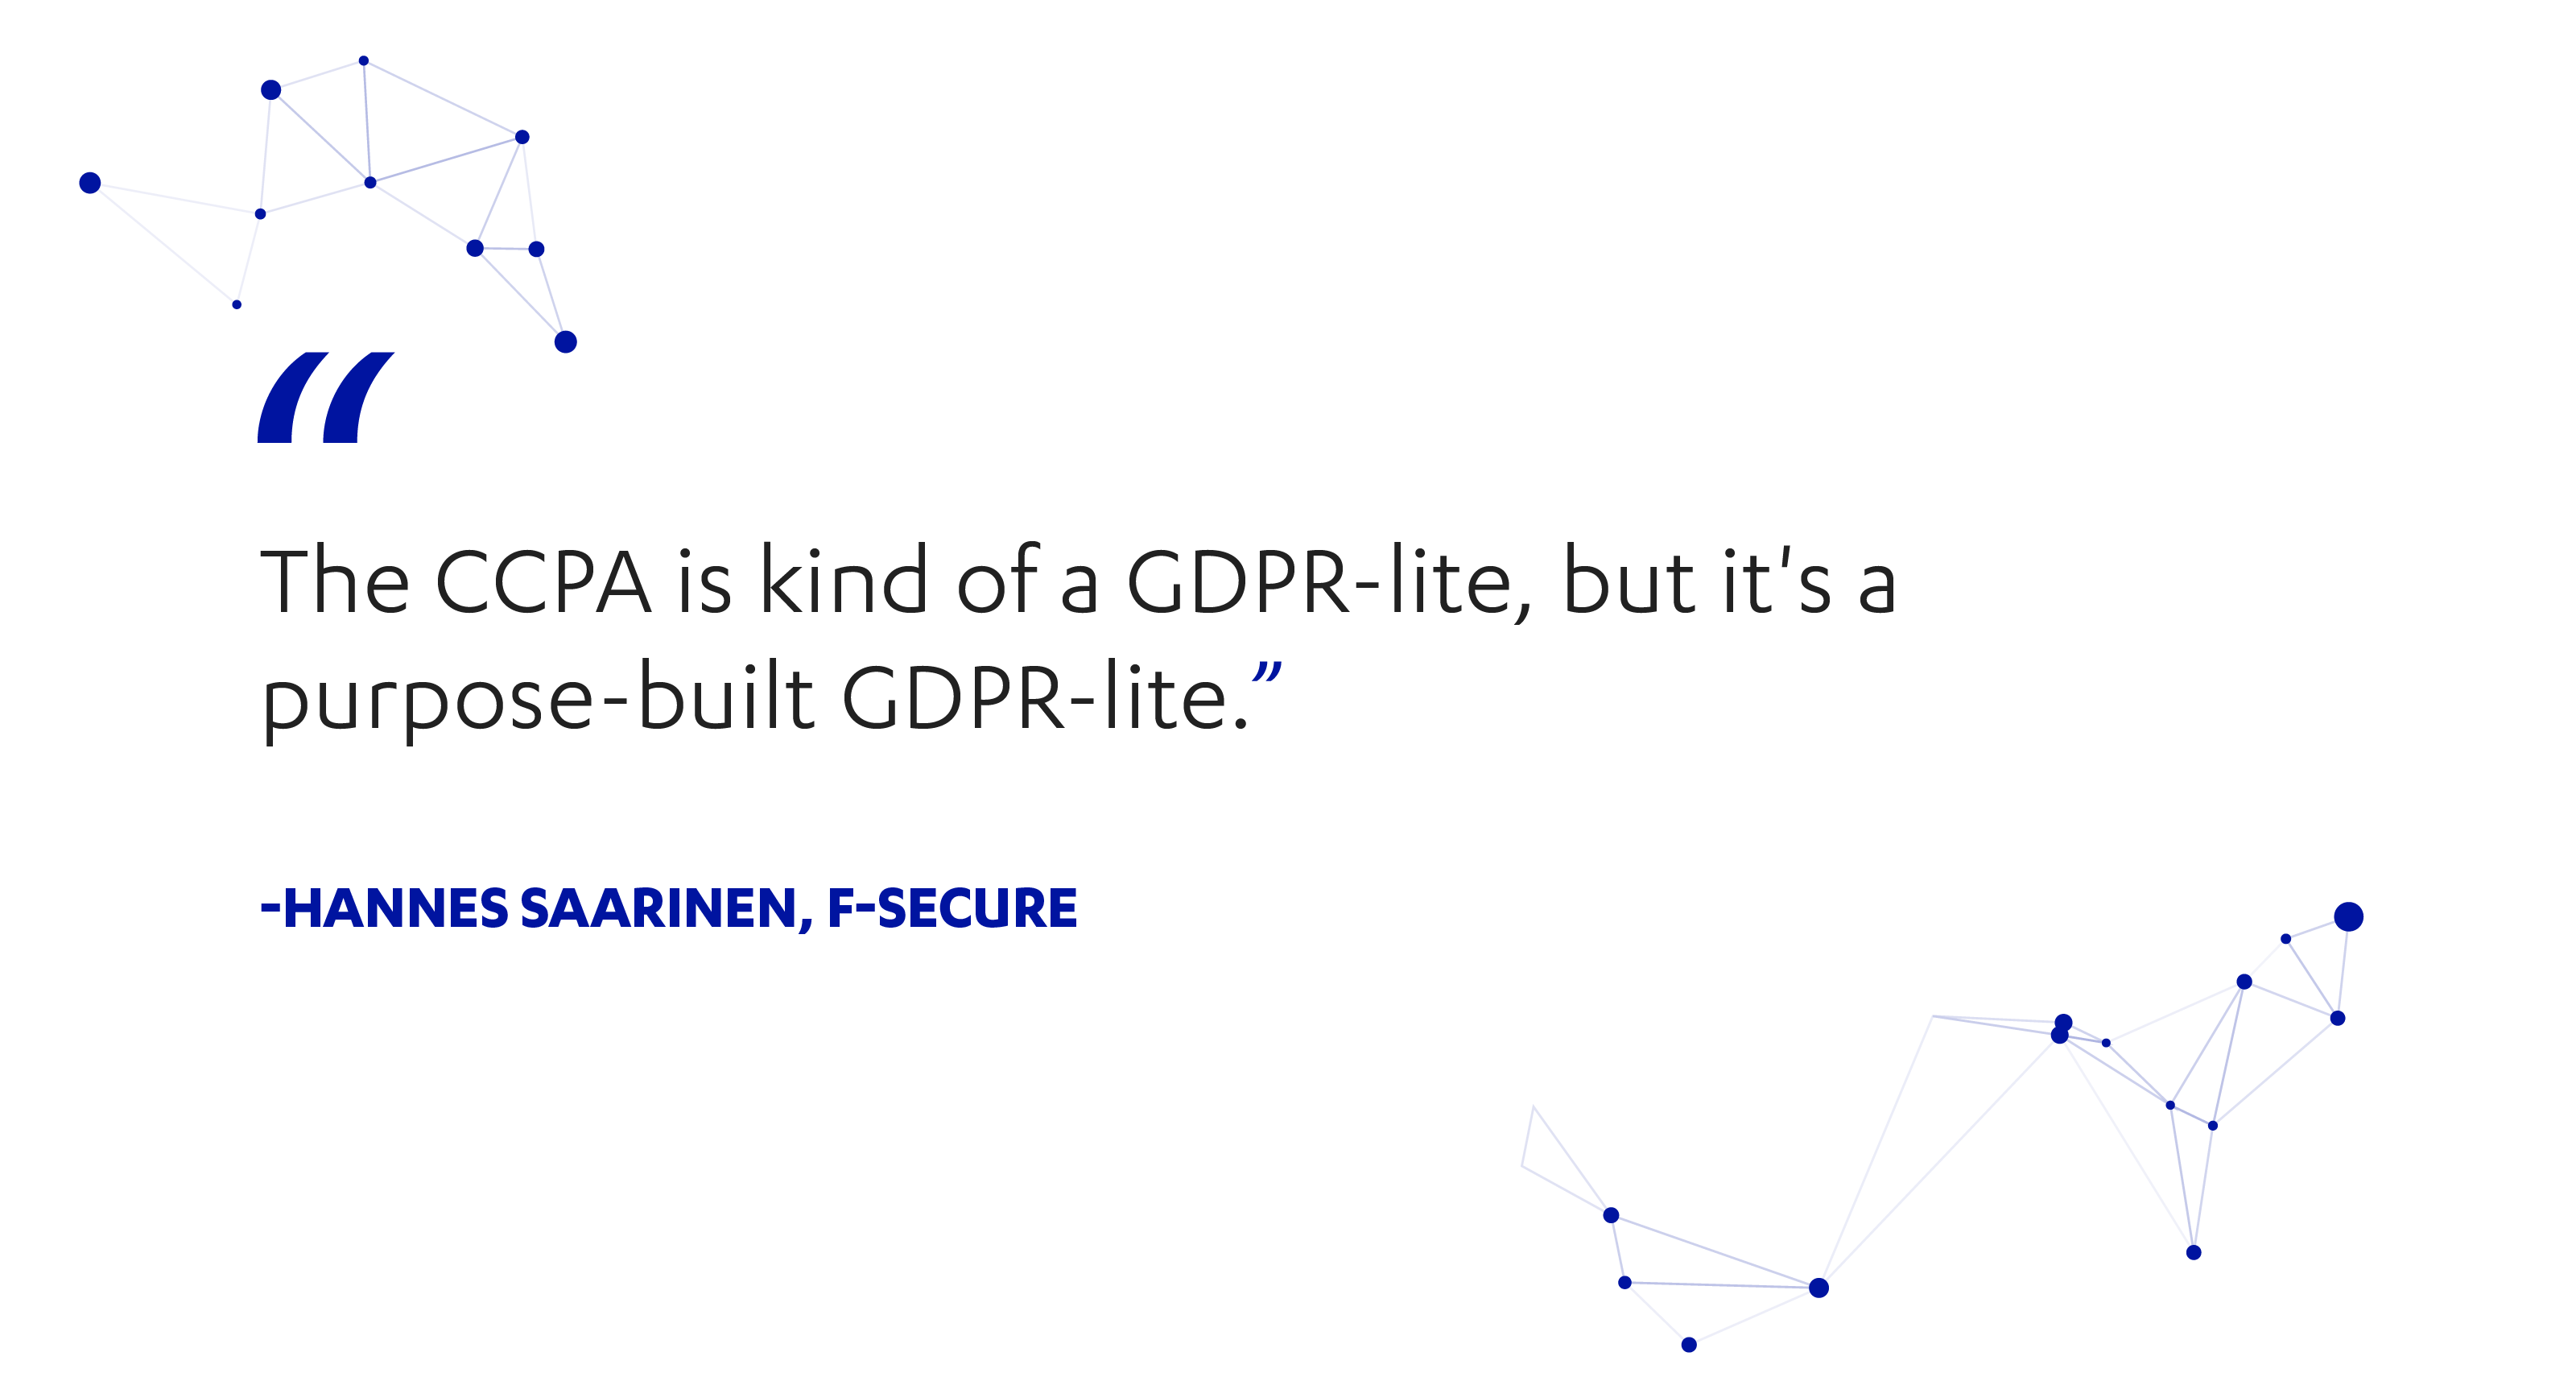 F-Secure's Hannes Saarinen on CCPA and GDPR